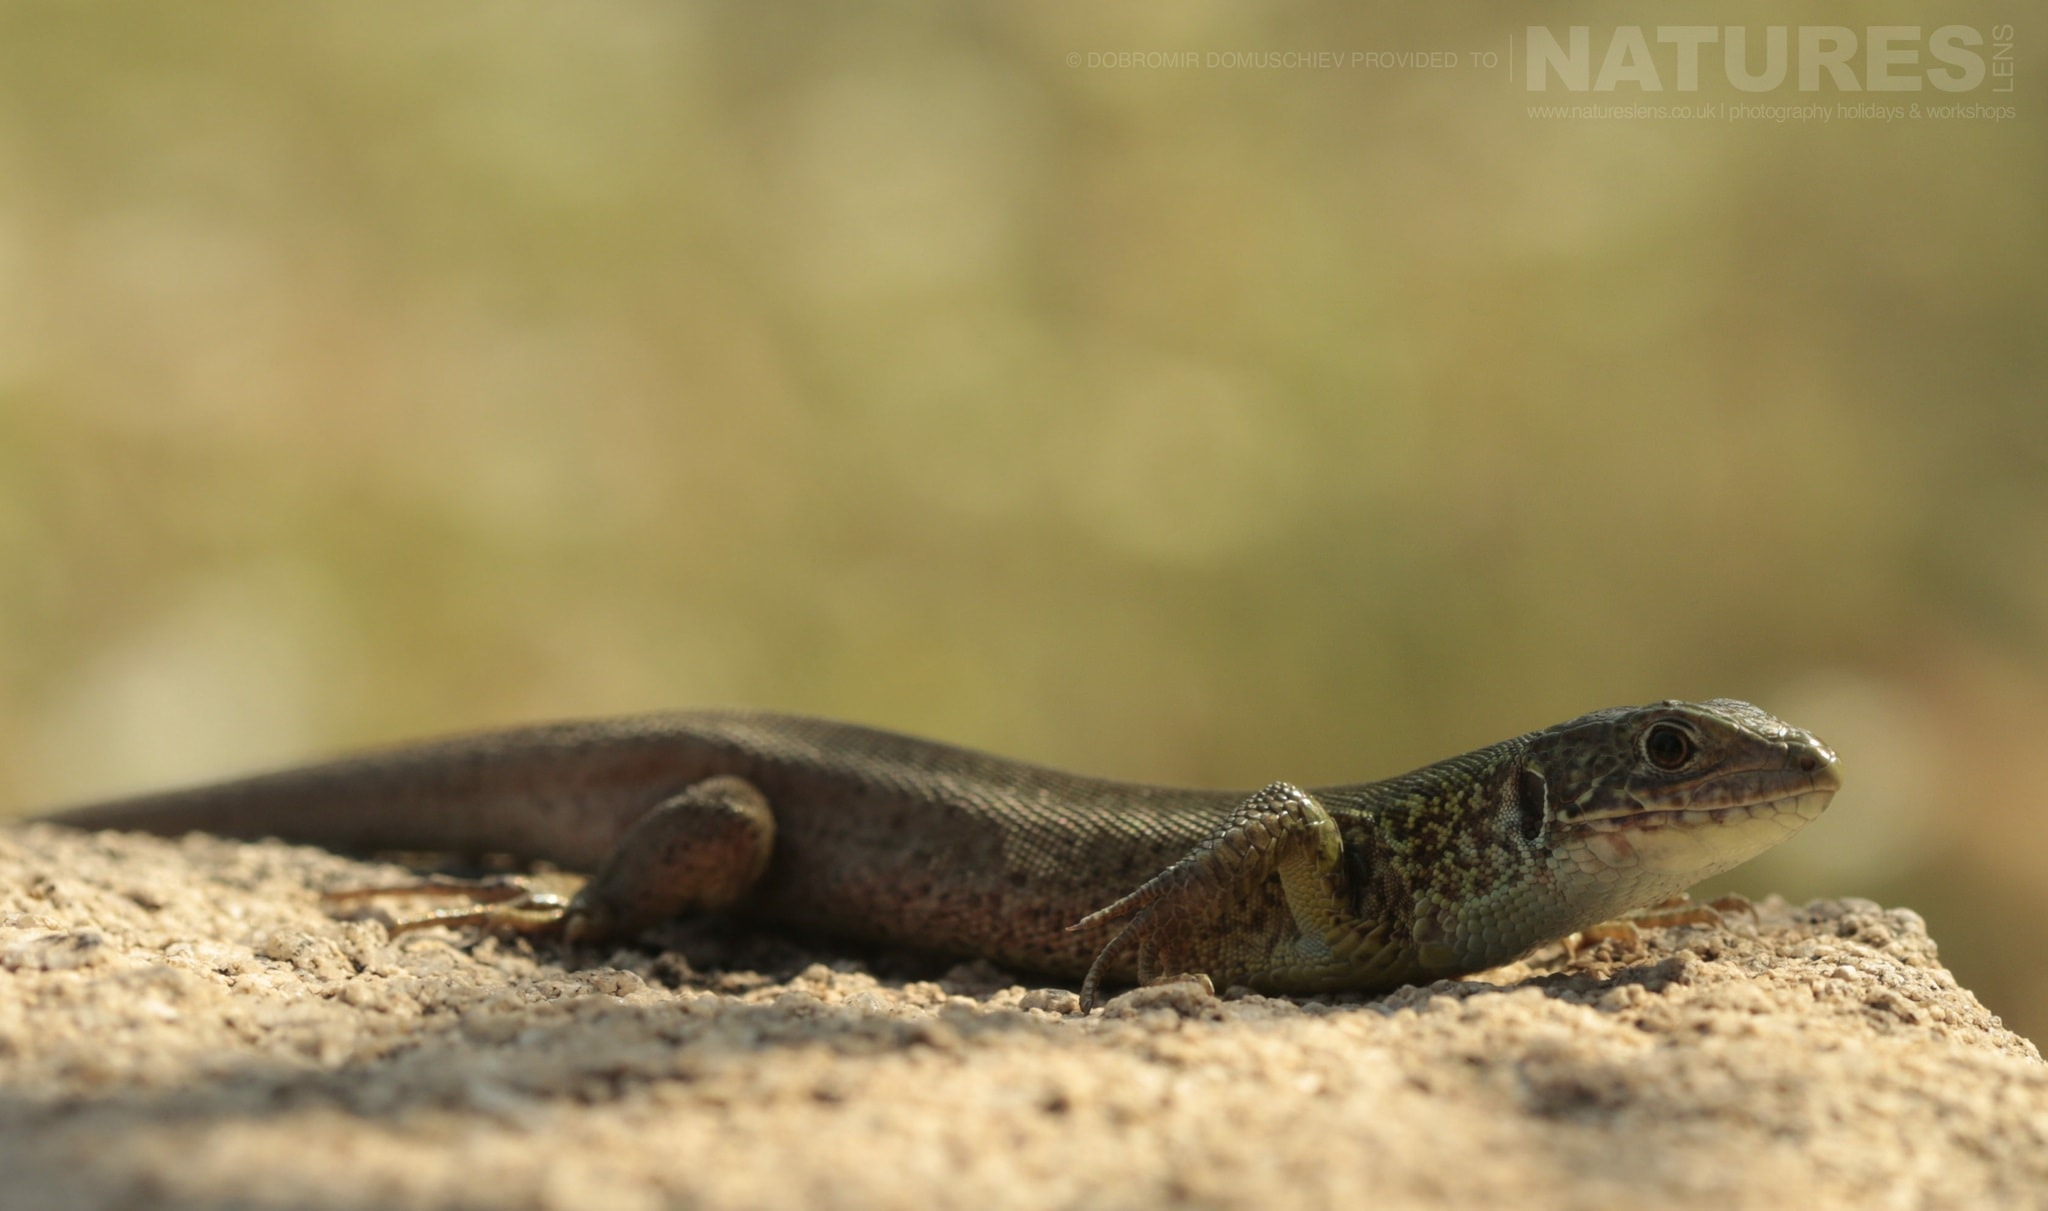 One Of The Many Types Of Lizard Photographed On A Photography Holiday To The Same Regions As The NaturesLens Butterflies & Macro Photography Of Bulgaria Photography Holiday